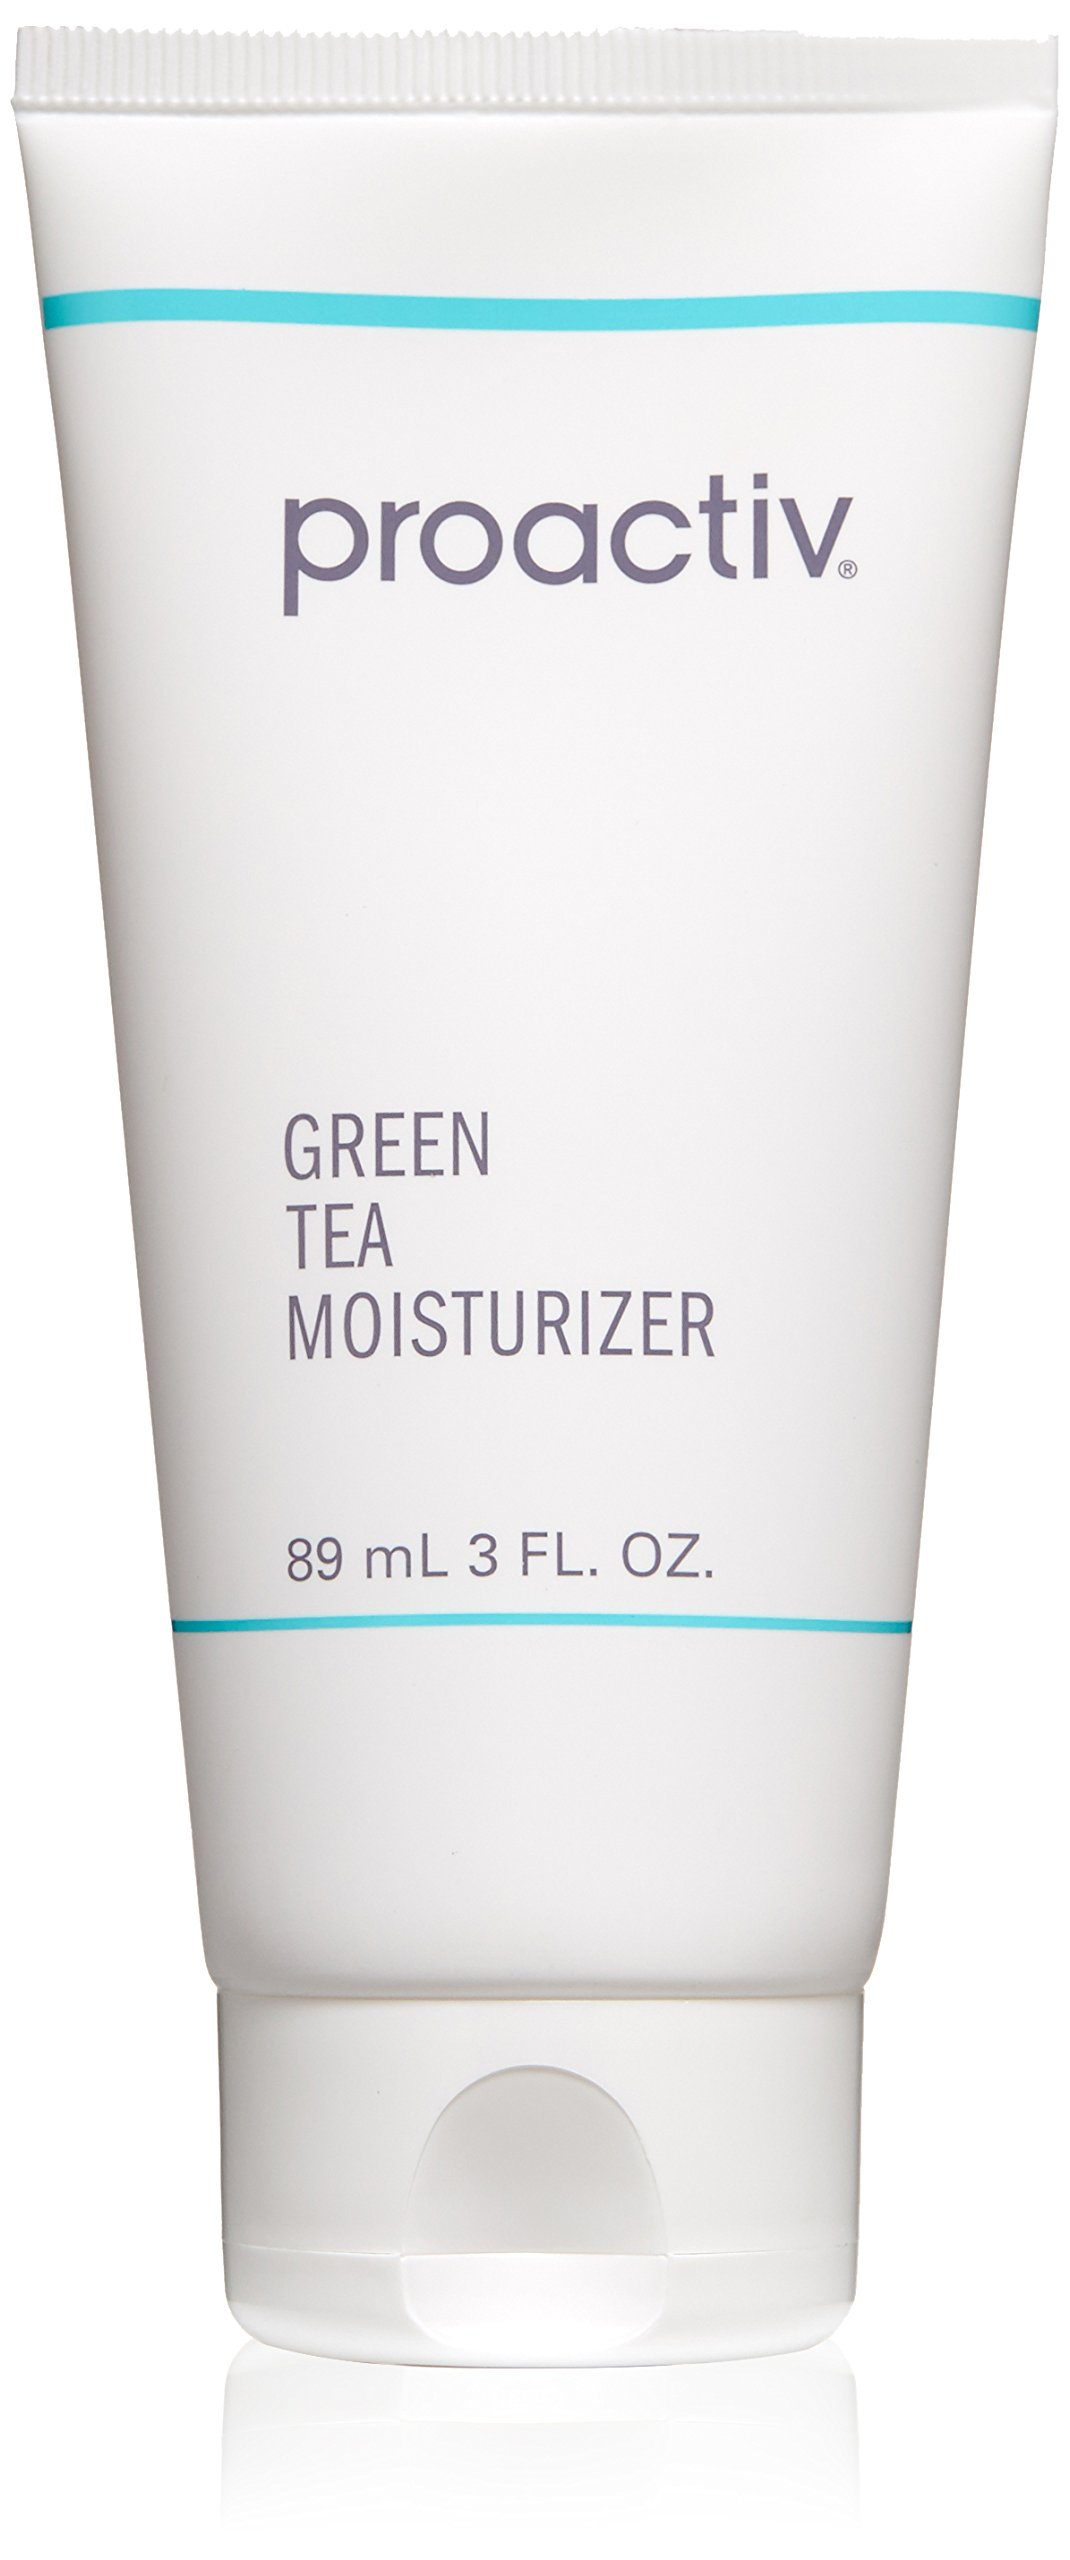 Proactiv Green Tea Moisturizer, 3 Ounce by Proactiv (Image #1)